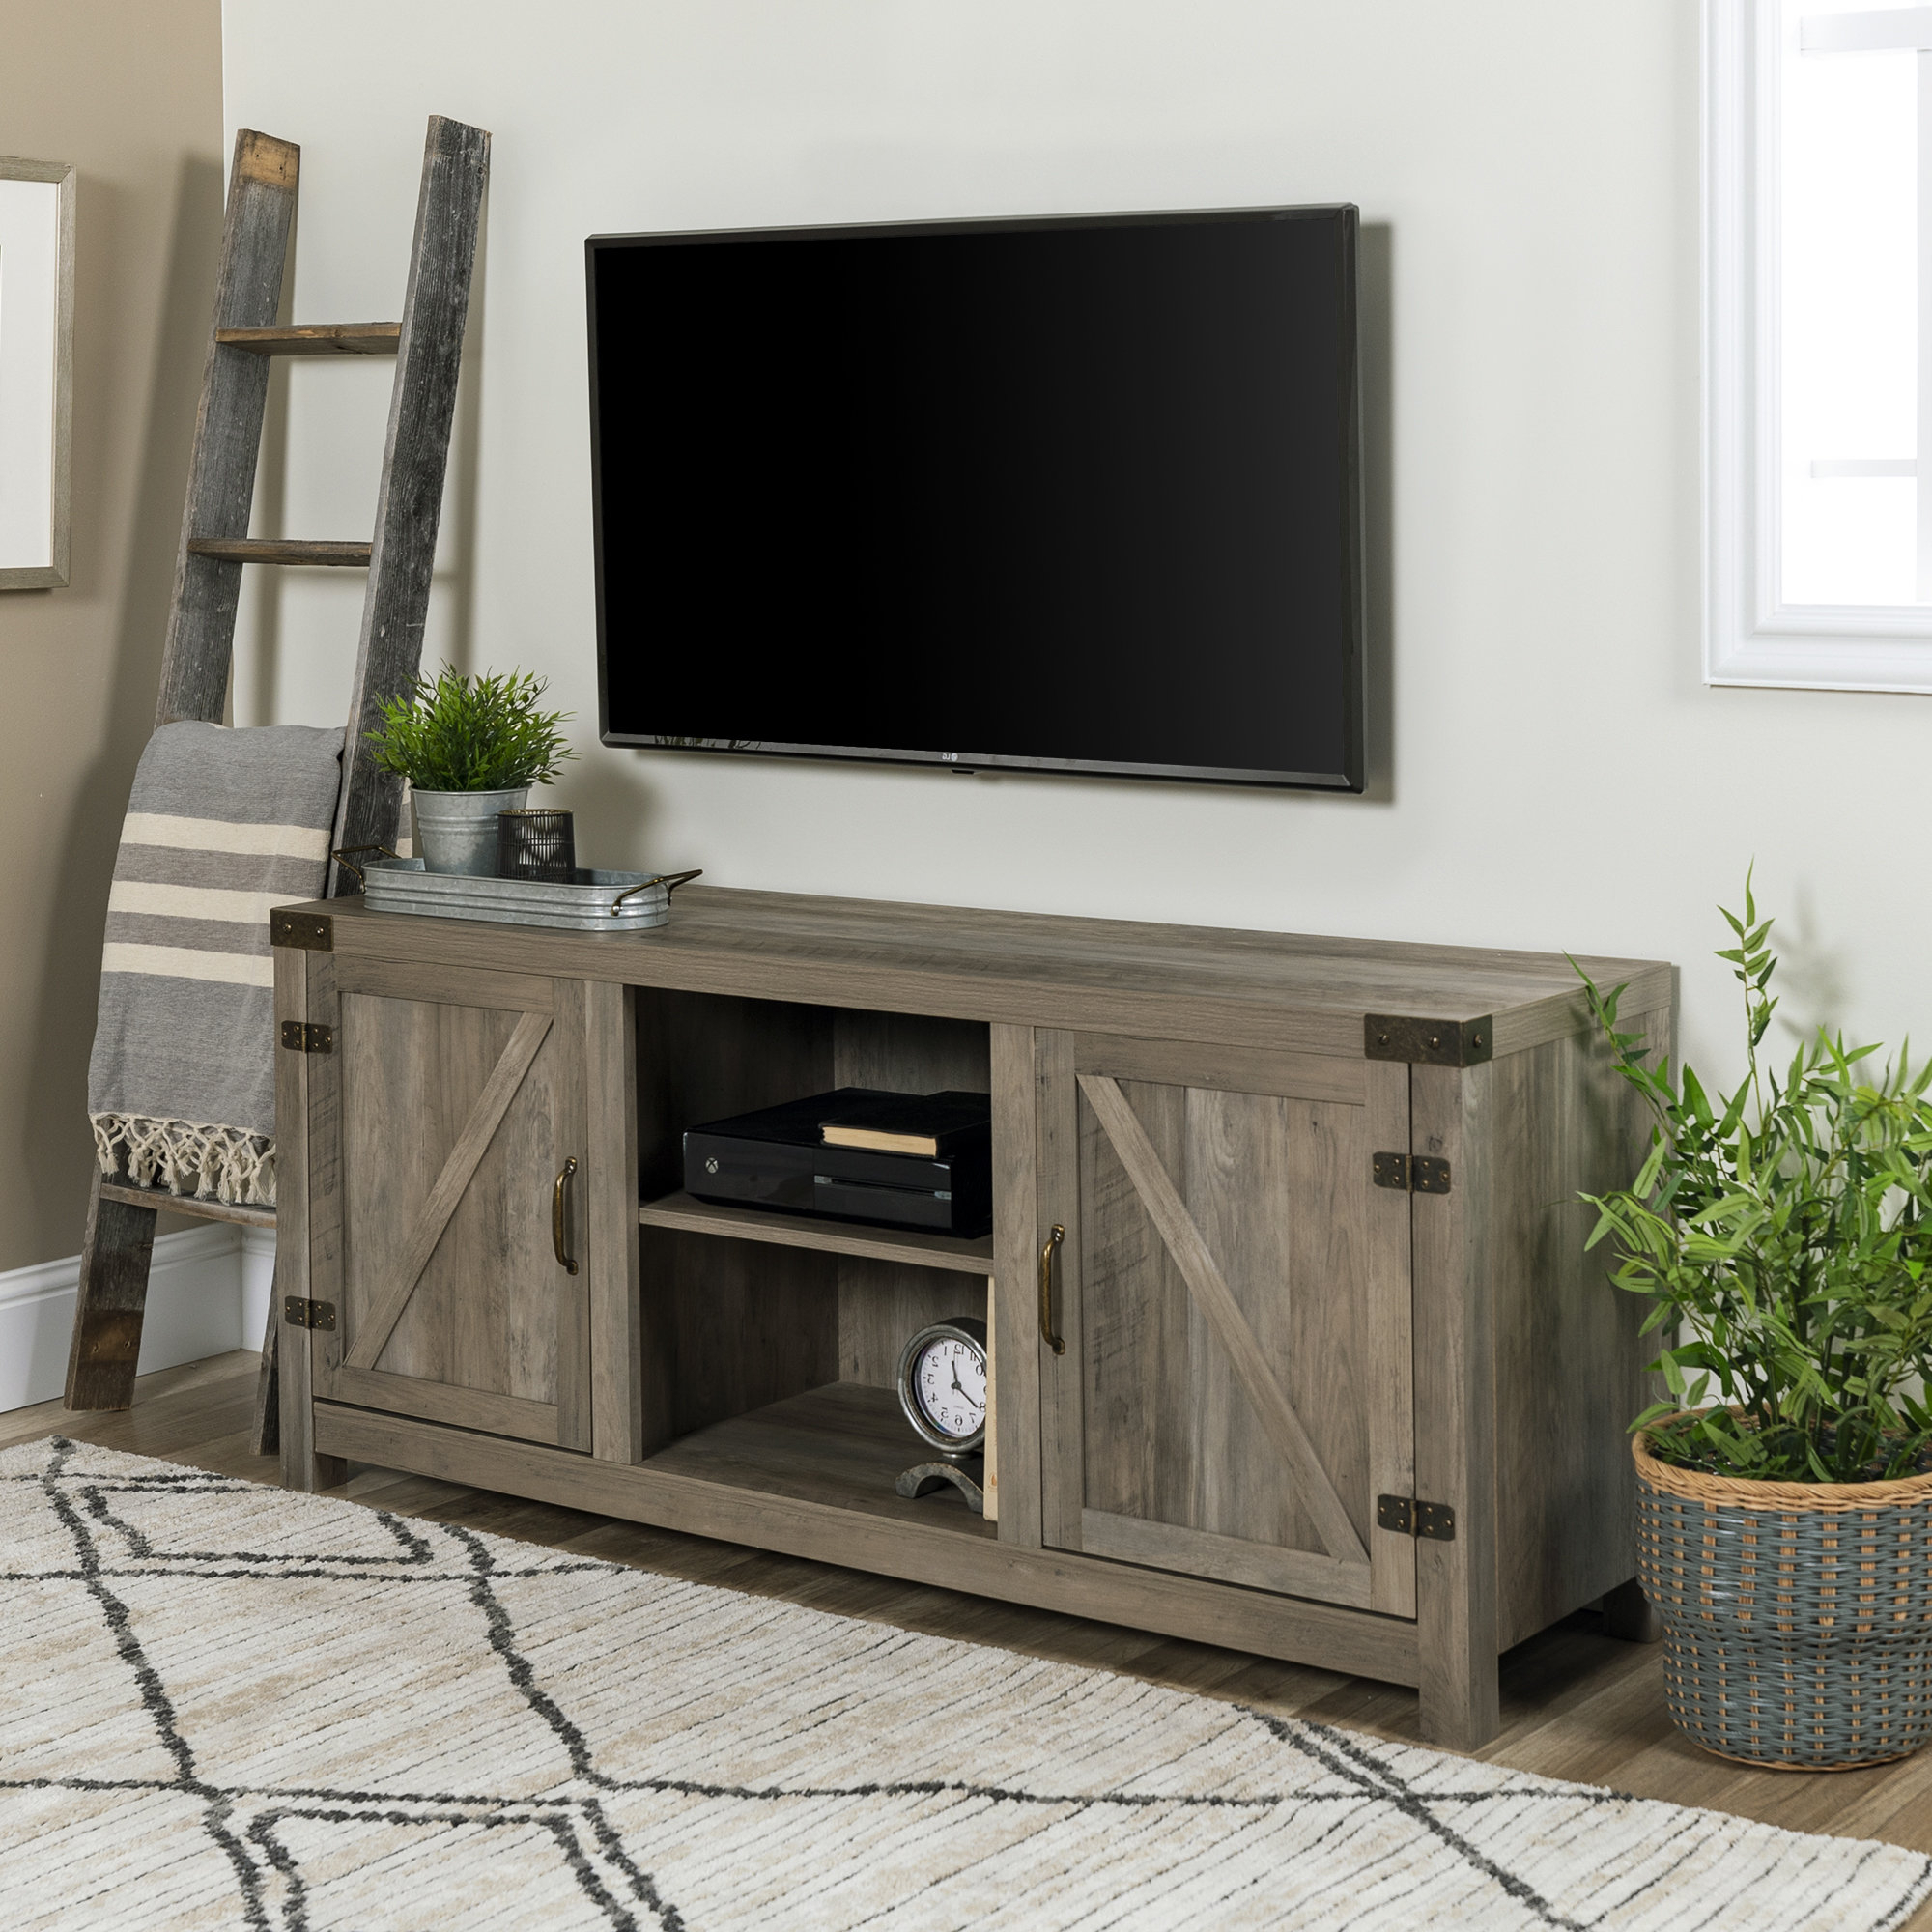 2017 Ducar 74 Inch Tv Stands Throughout Tv Stands & Entertainment Centers You'll Love (View 1 of 20)